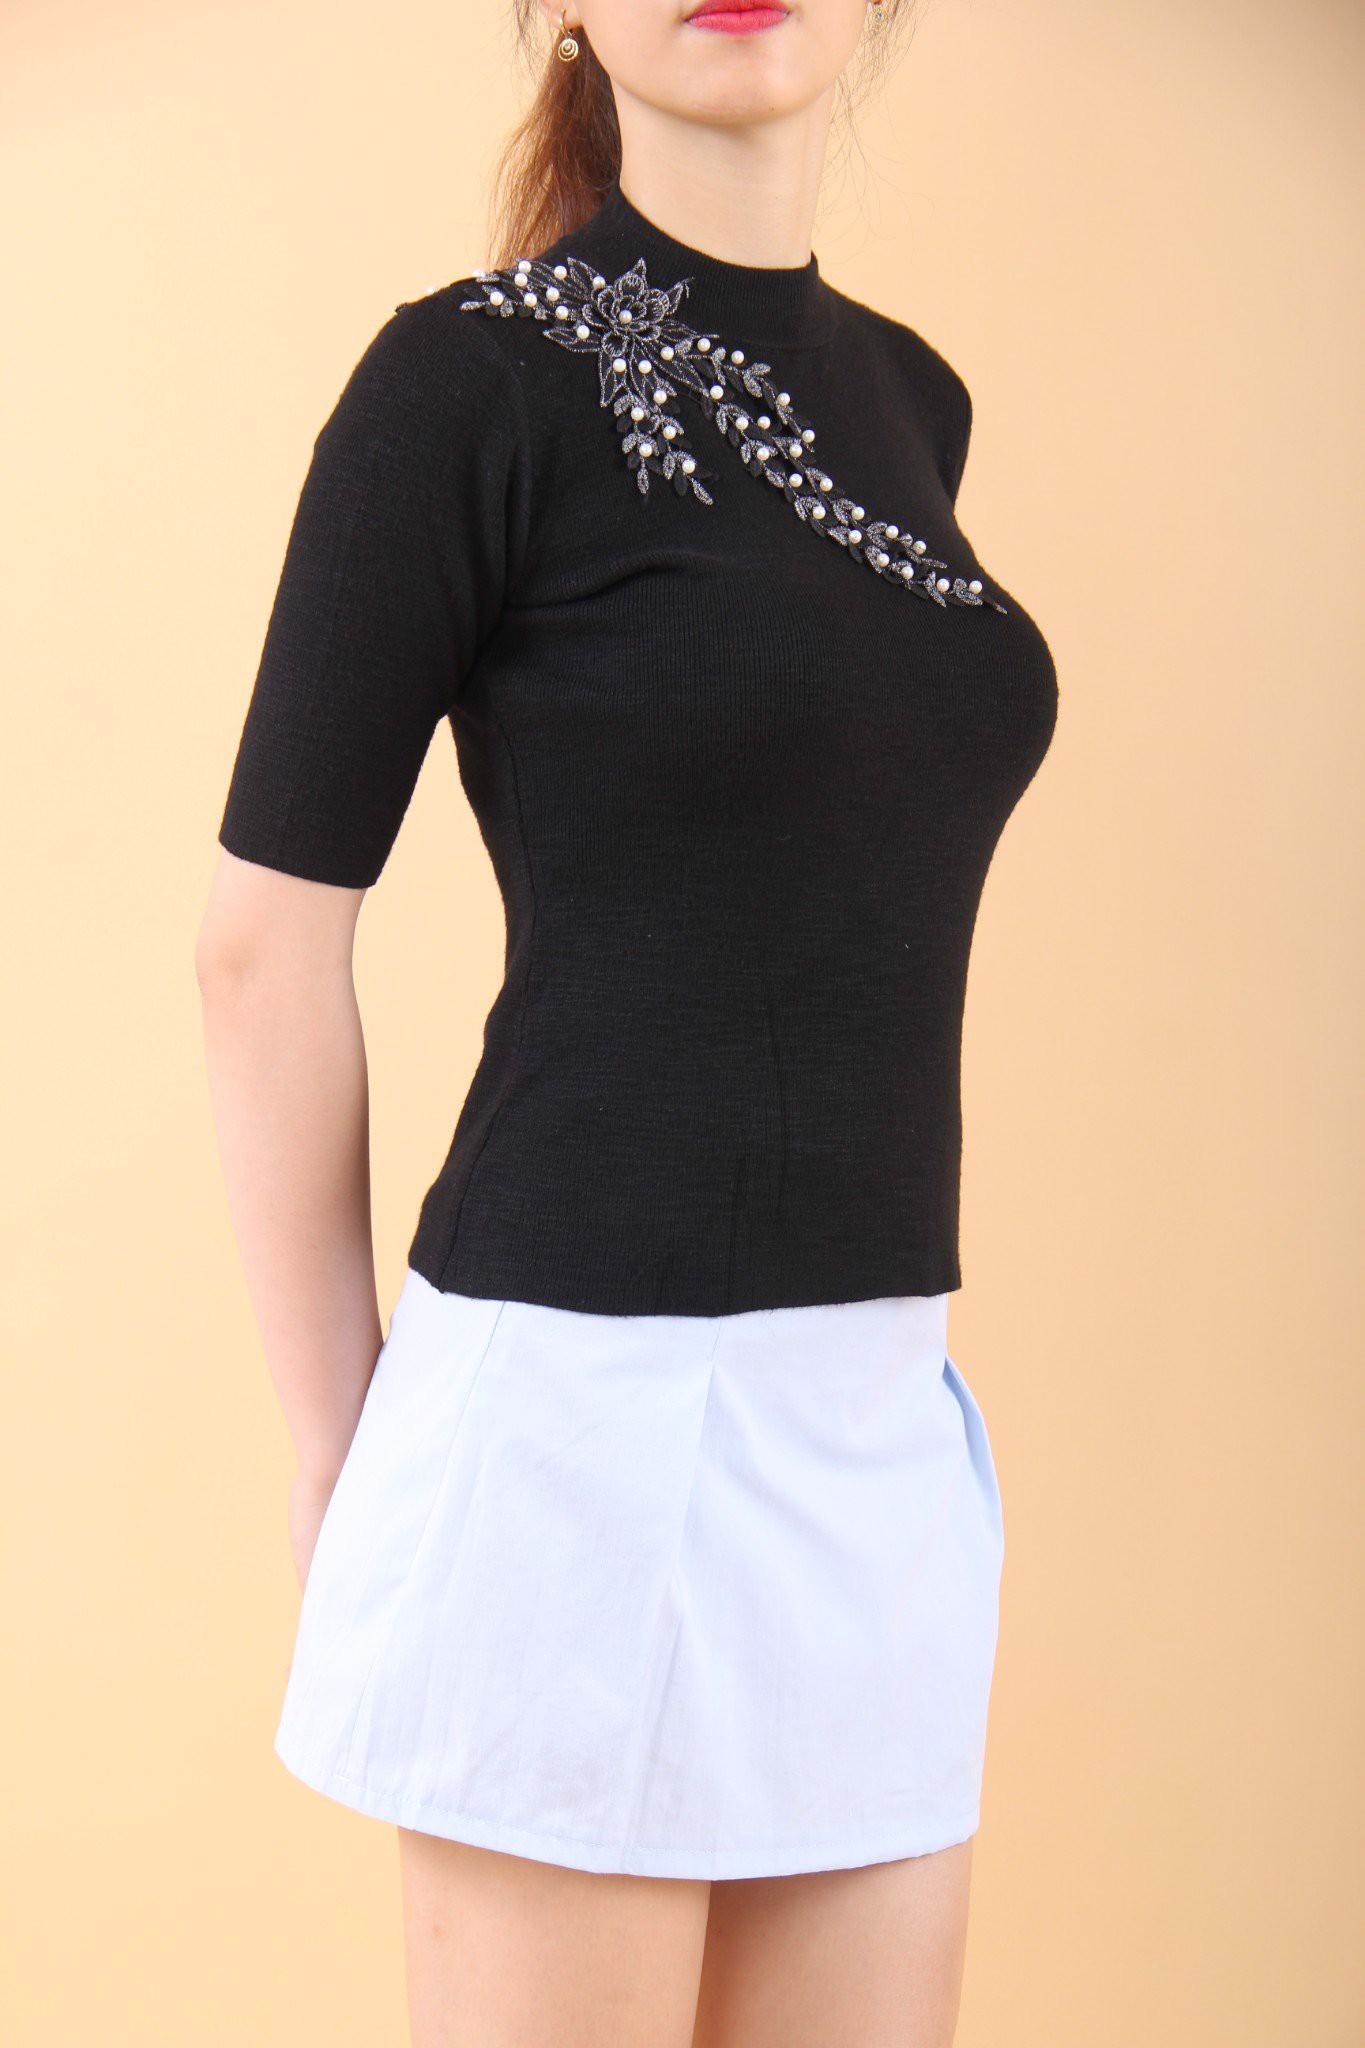 3D Willow leaves black high neck fitted top